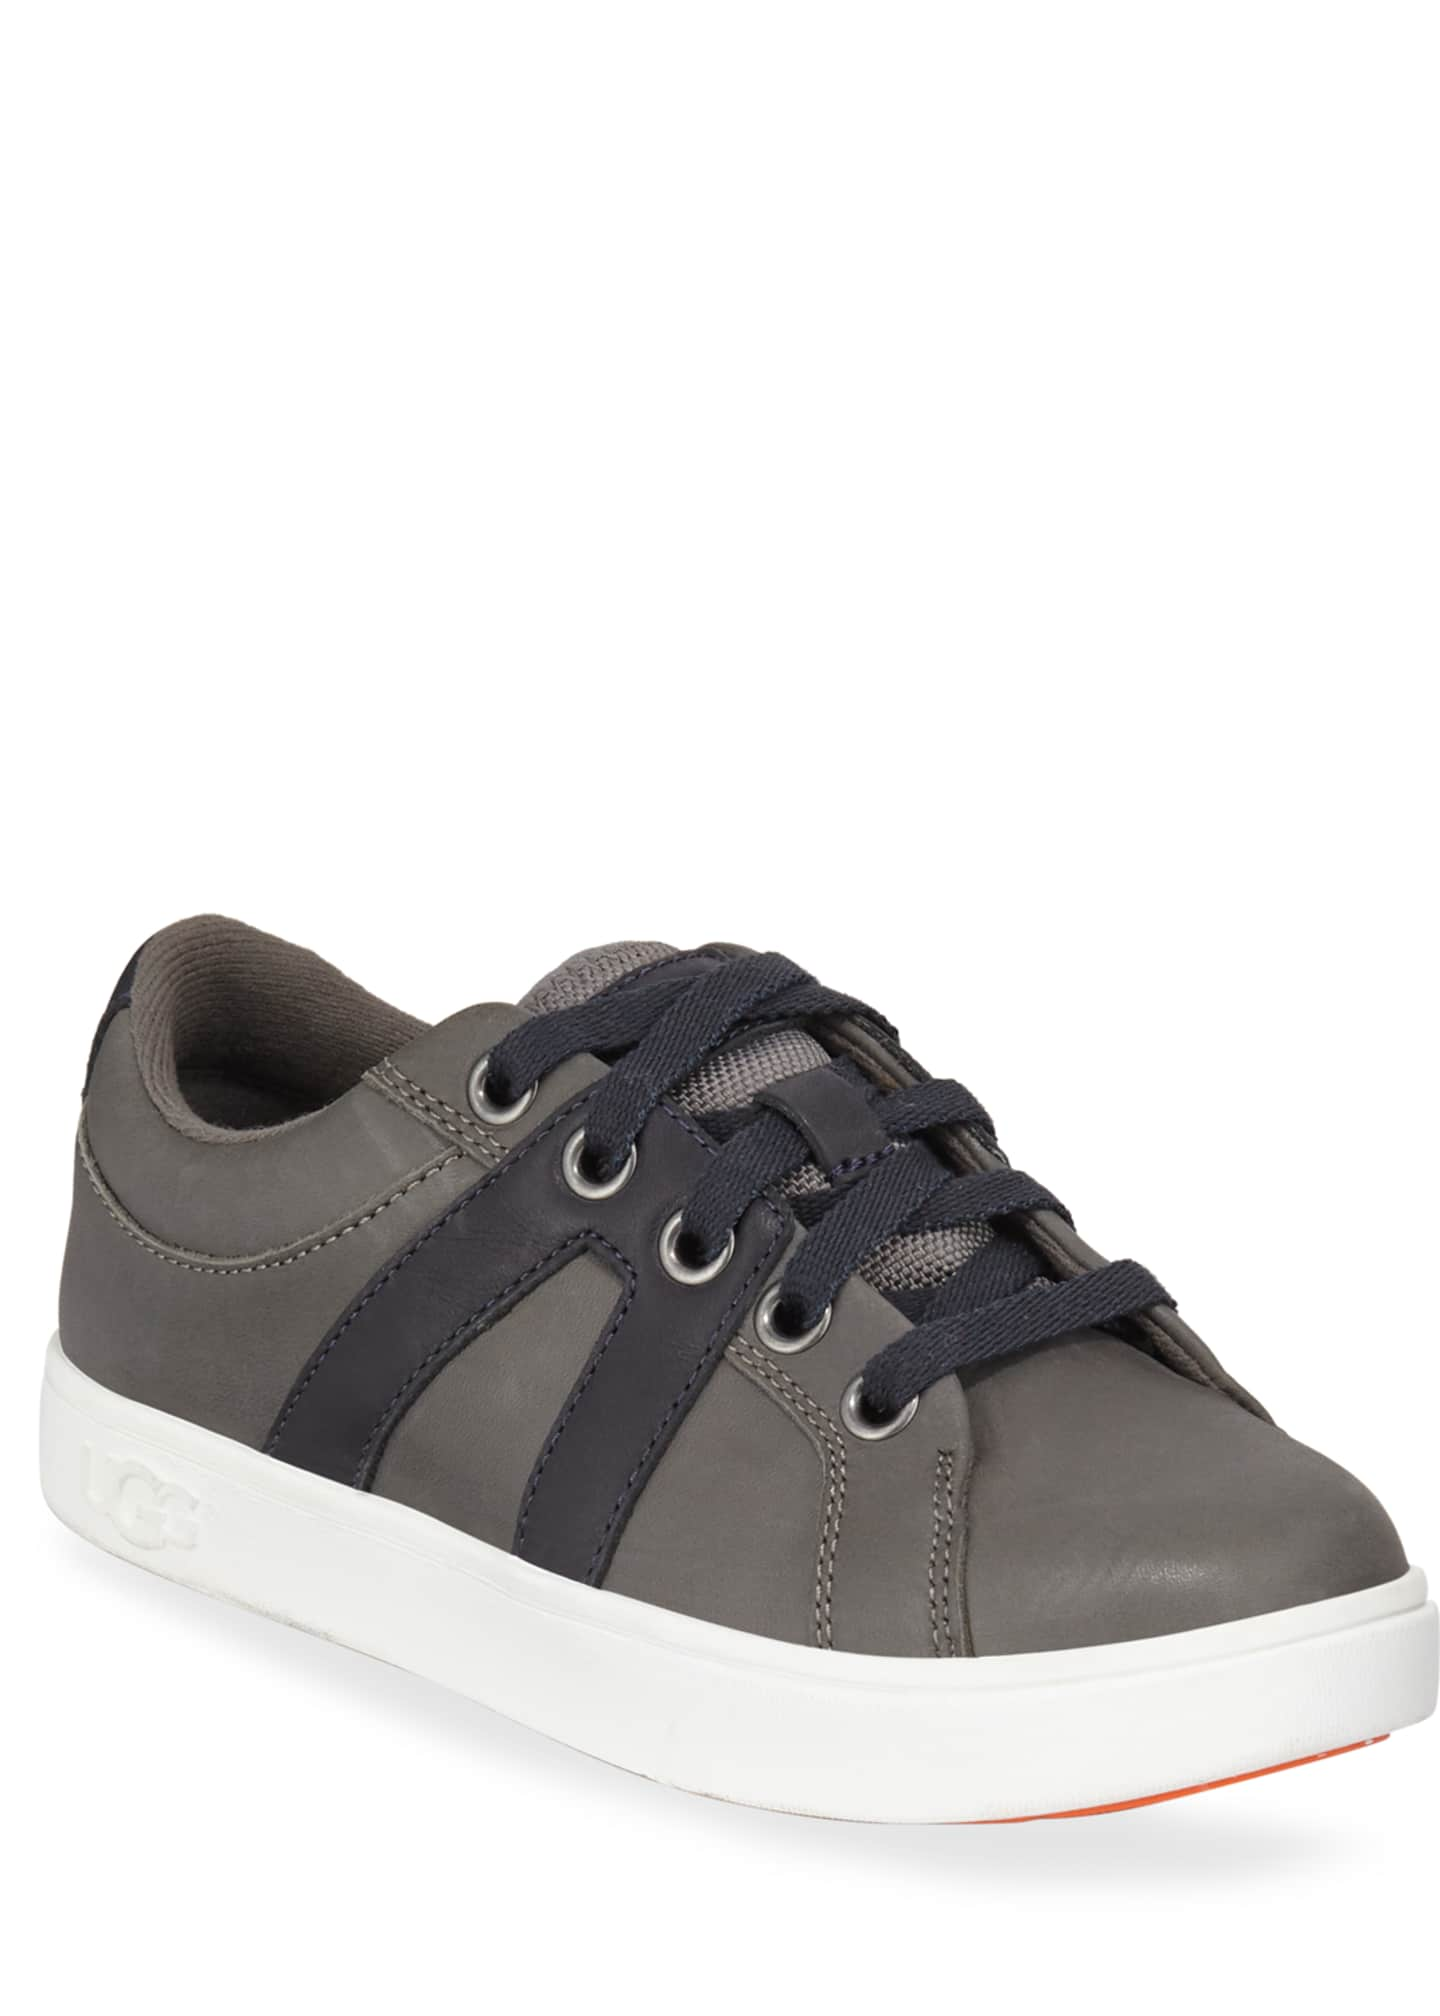 Image 1 of 4: Marcus Leather Sneakers, Toddler/Kids